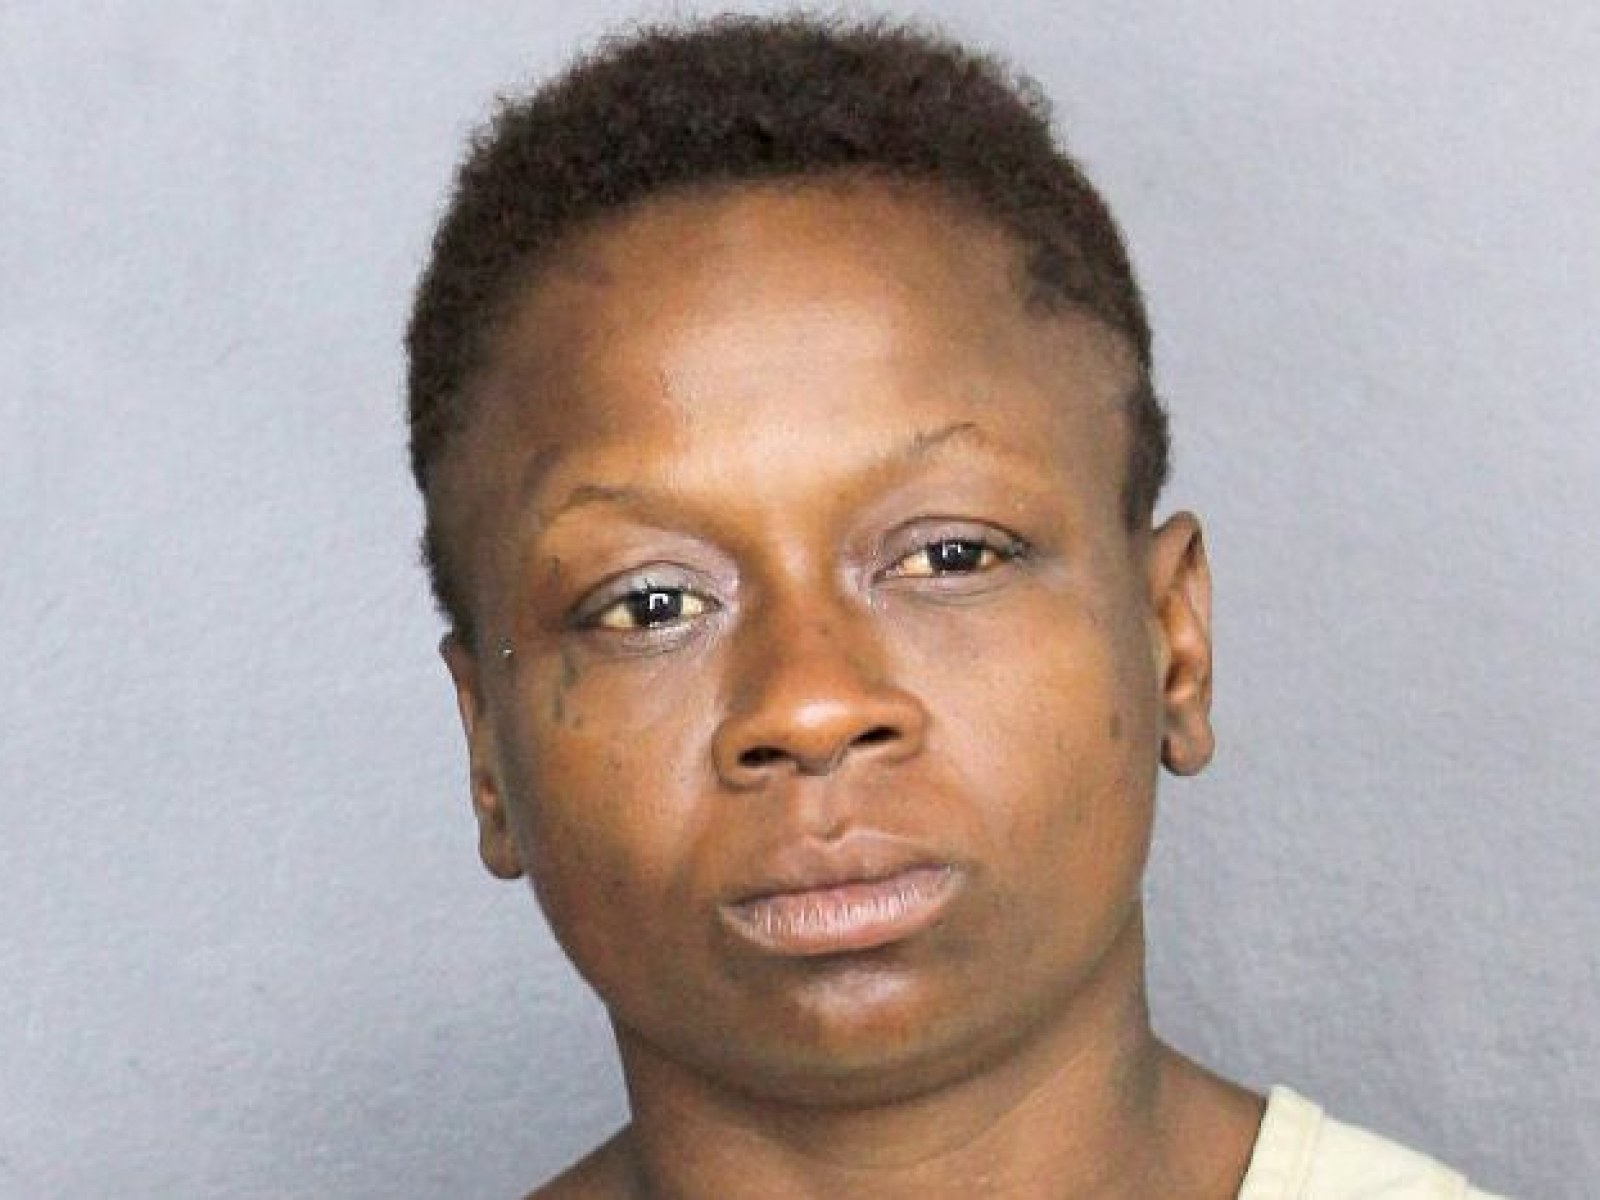 Florida Woman Who 'Farted Loudly' Arrested For Threatening To 'Gut' A Man